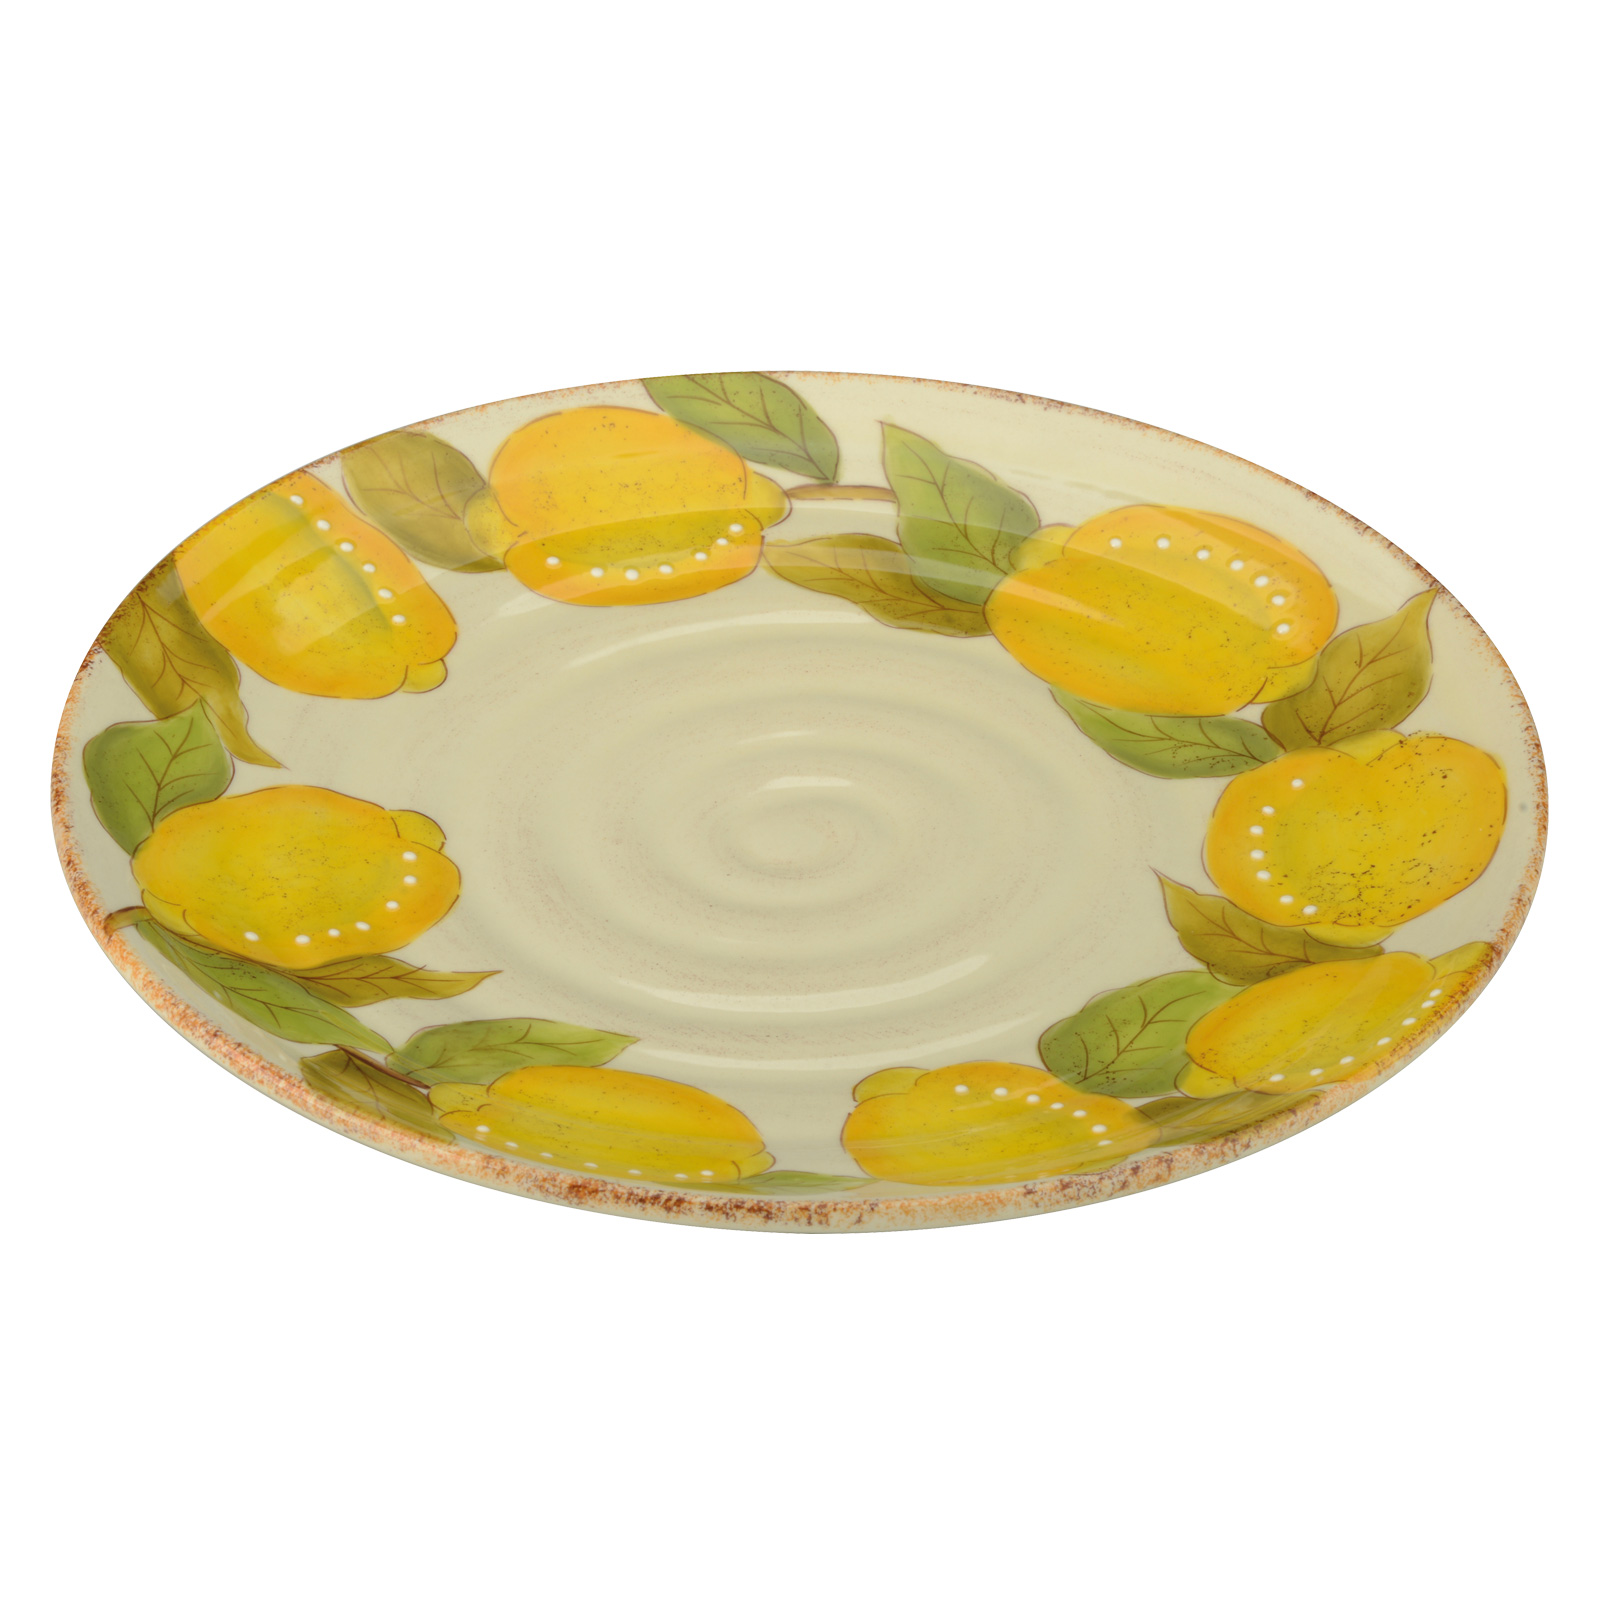 Set of 4 Sorrento Dinner Plates by BIA